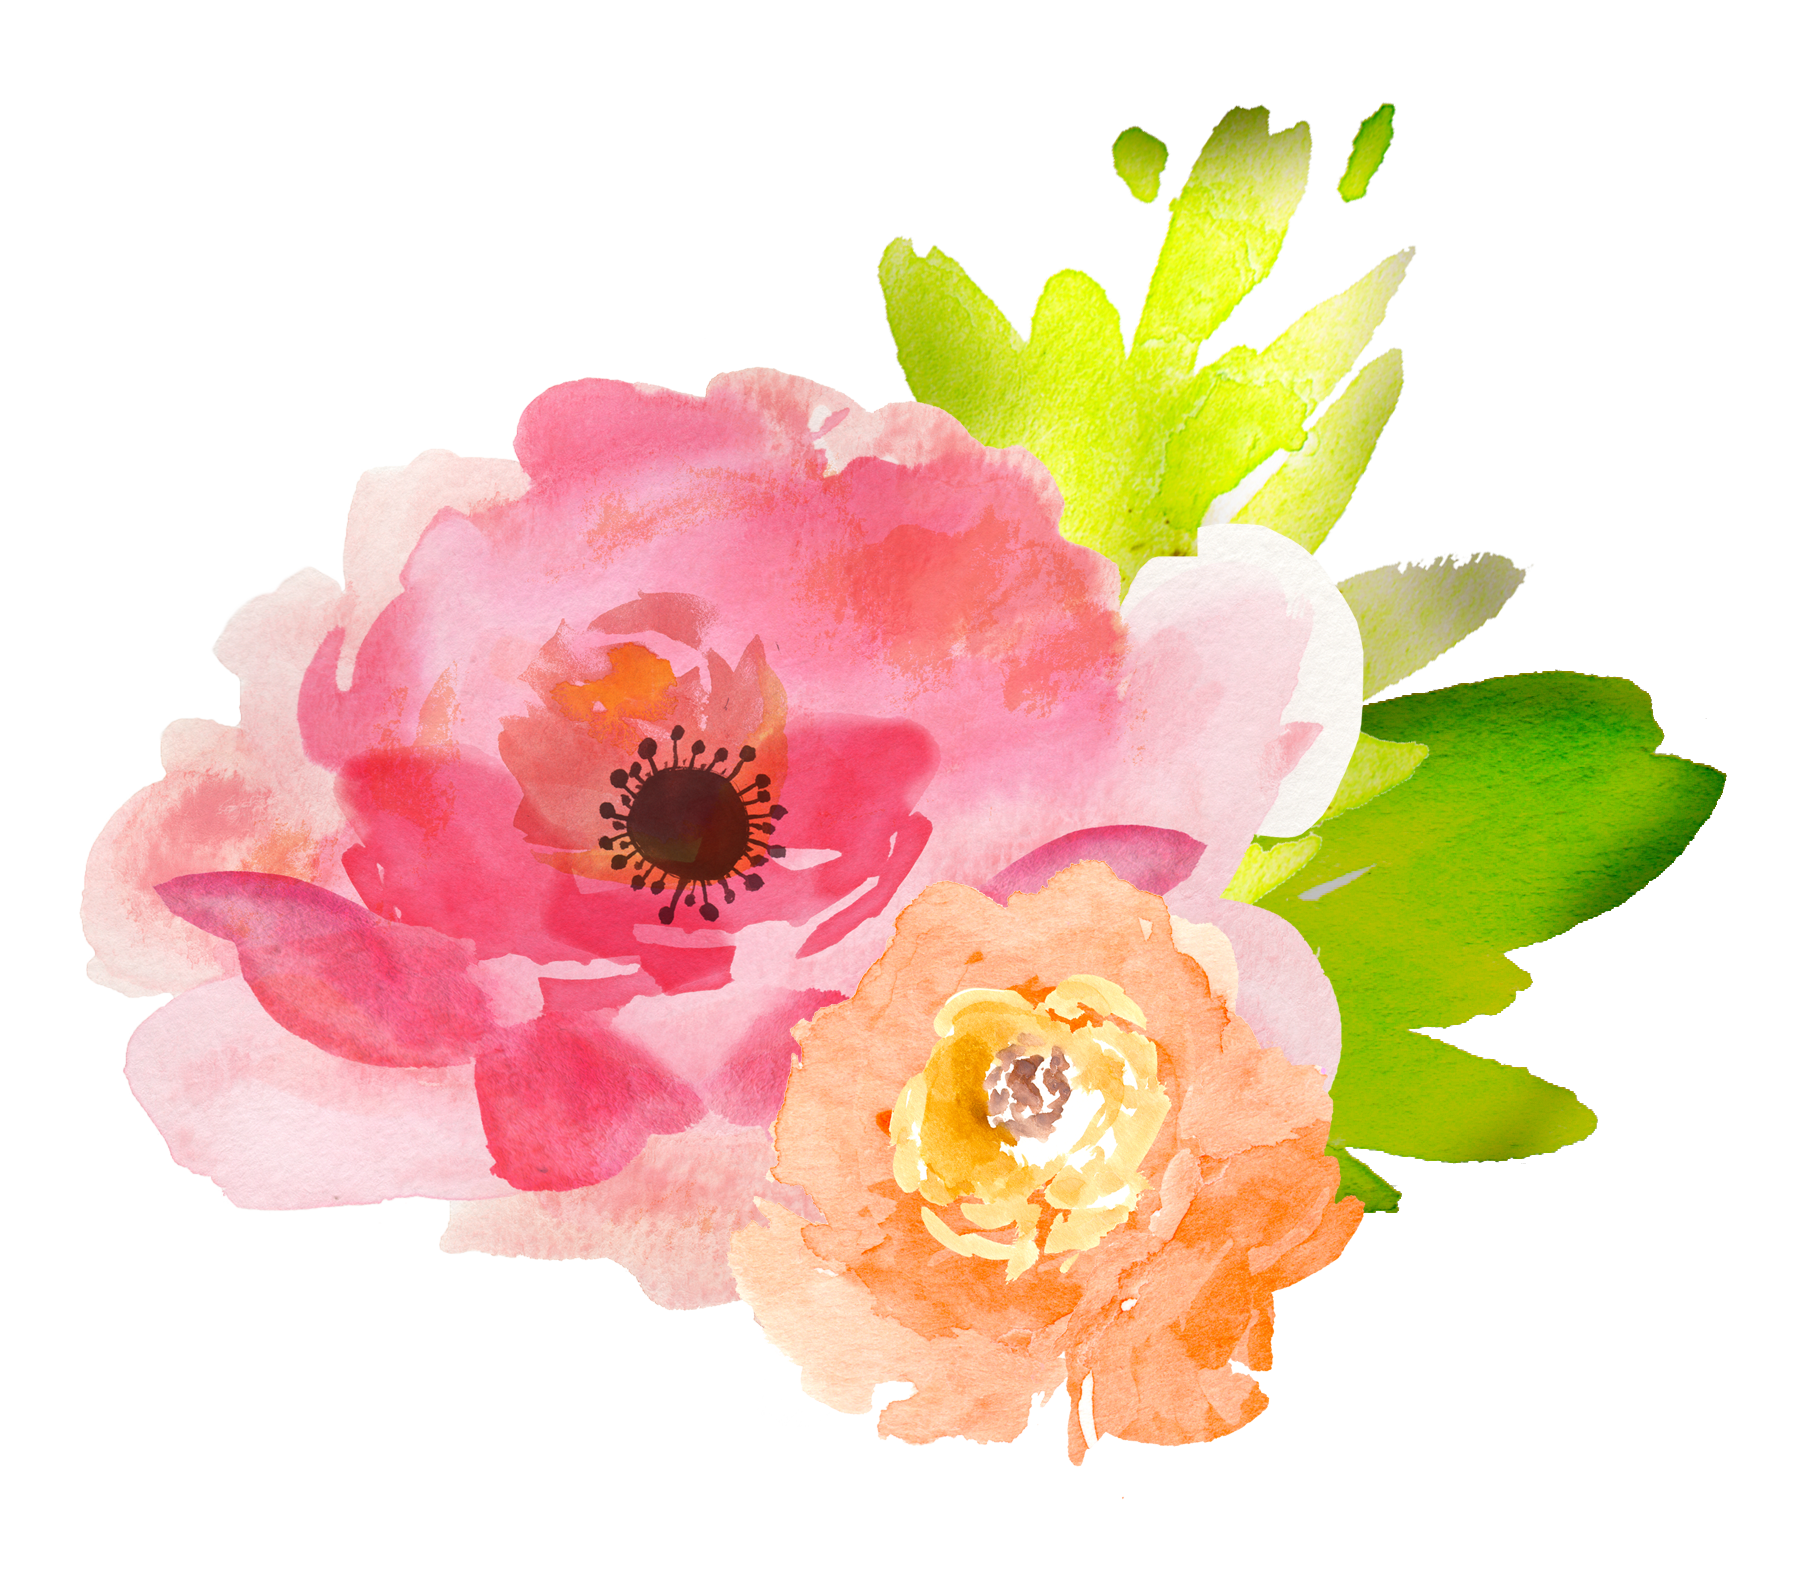 Watercolour flowers painting floral. Pink watercolor flower png clip stock